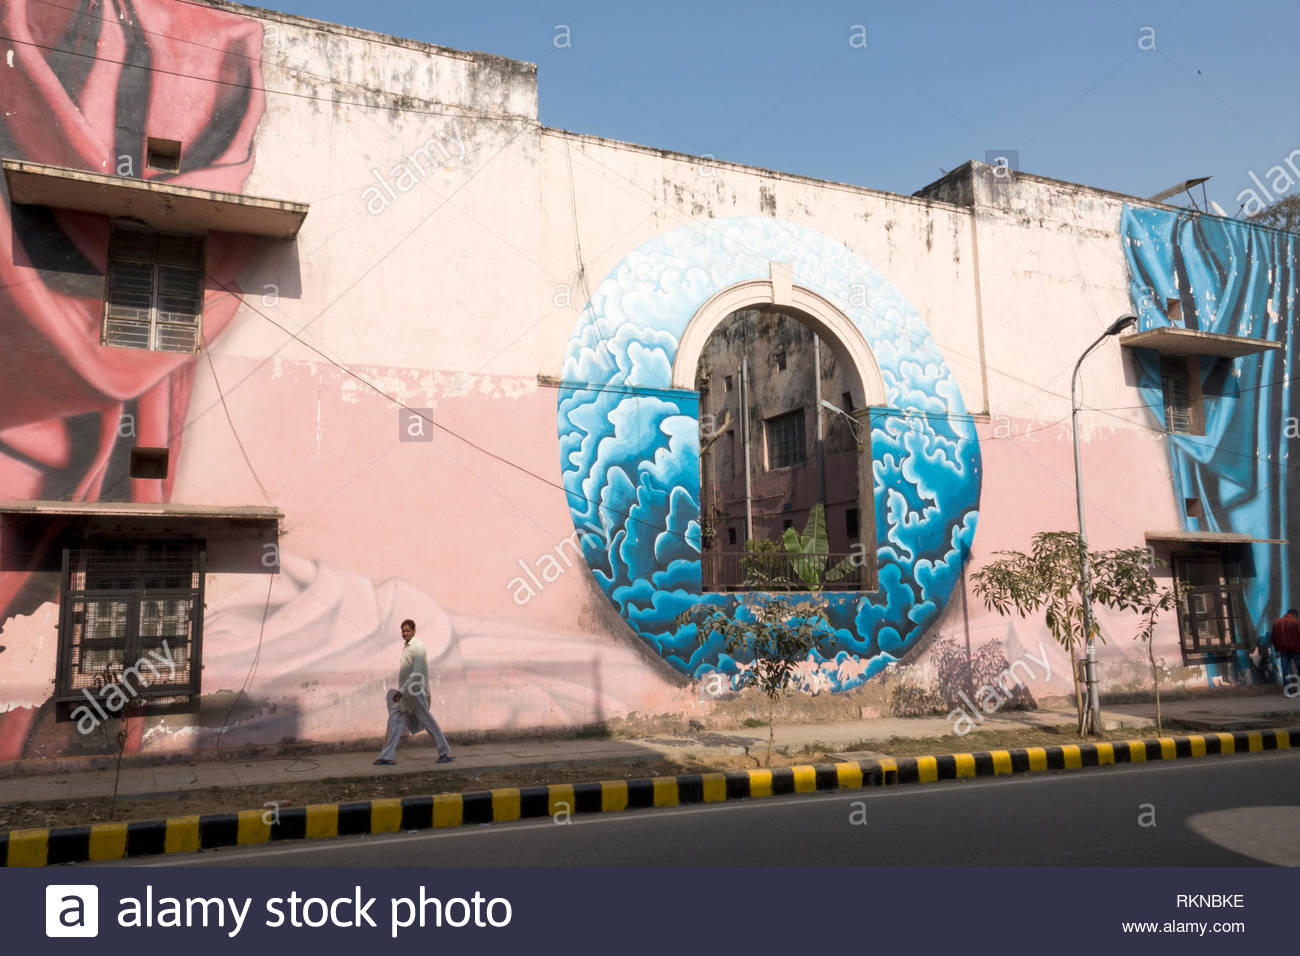 Man walks past a large mural painted on side of building in Lodhi Colony, New Delhi, India - Stock Image